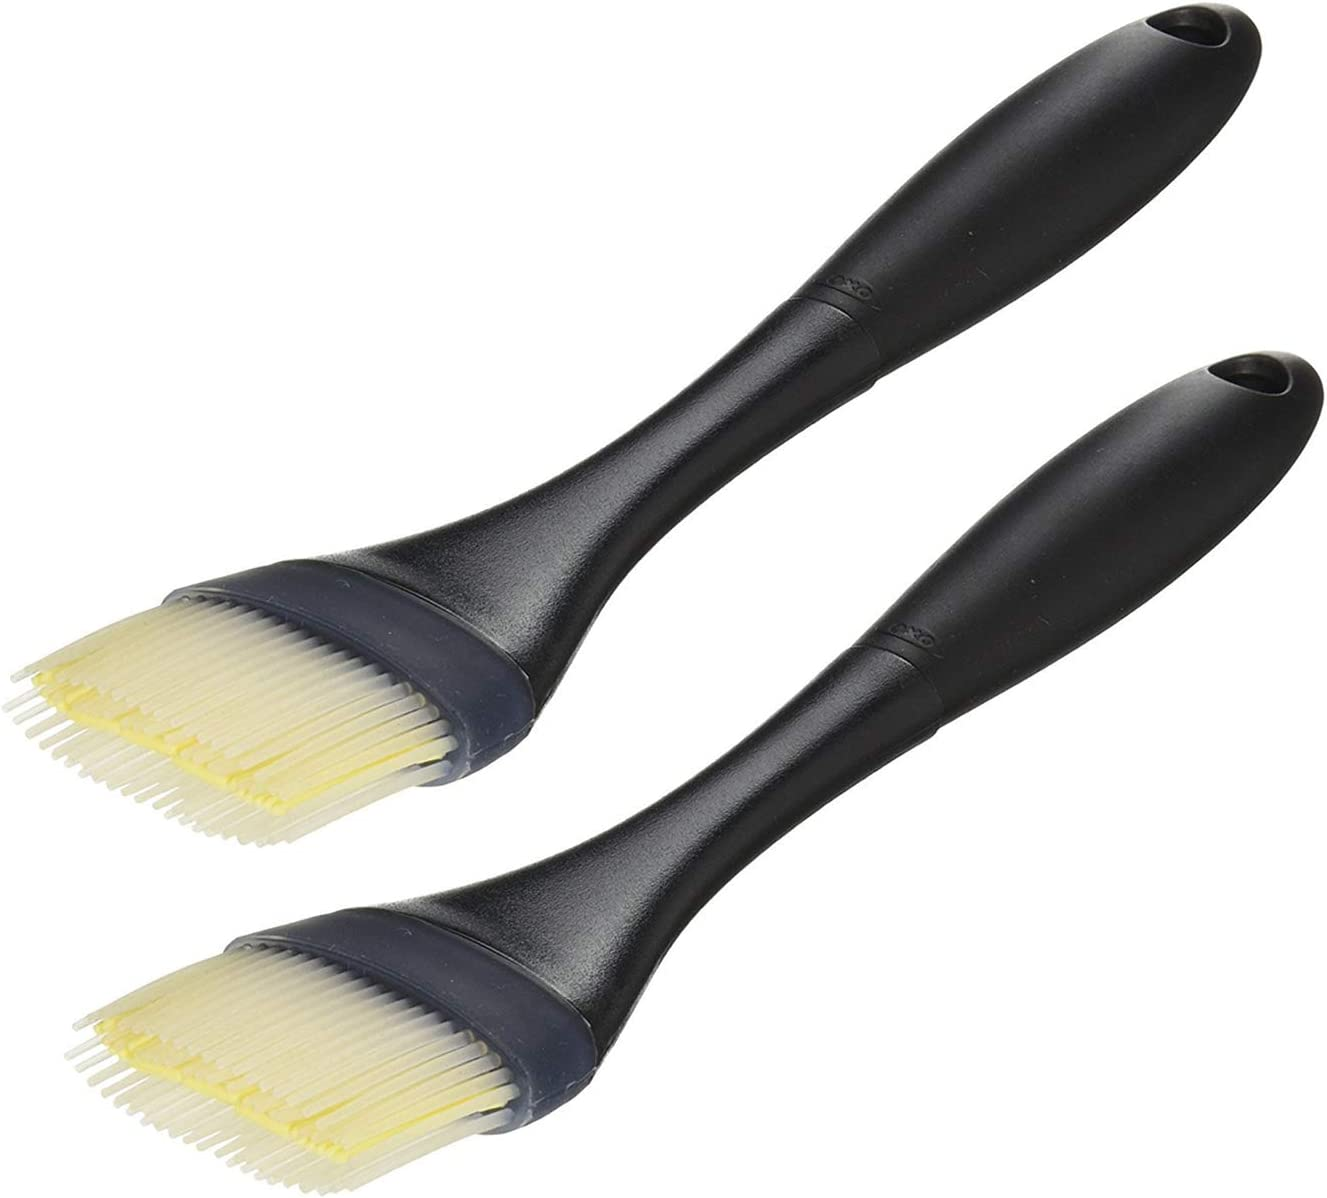 OXO Good Grips Silicone Basting & Pastry Brush - Large (2 Pack)